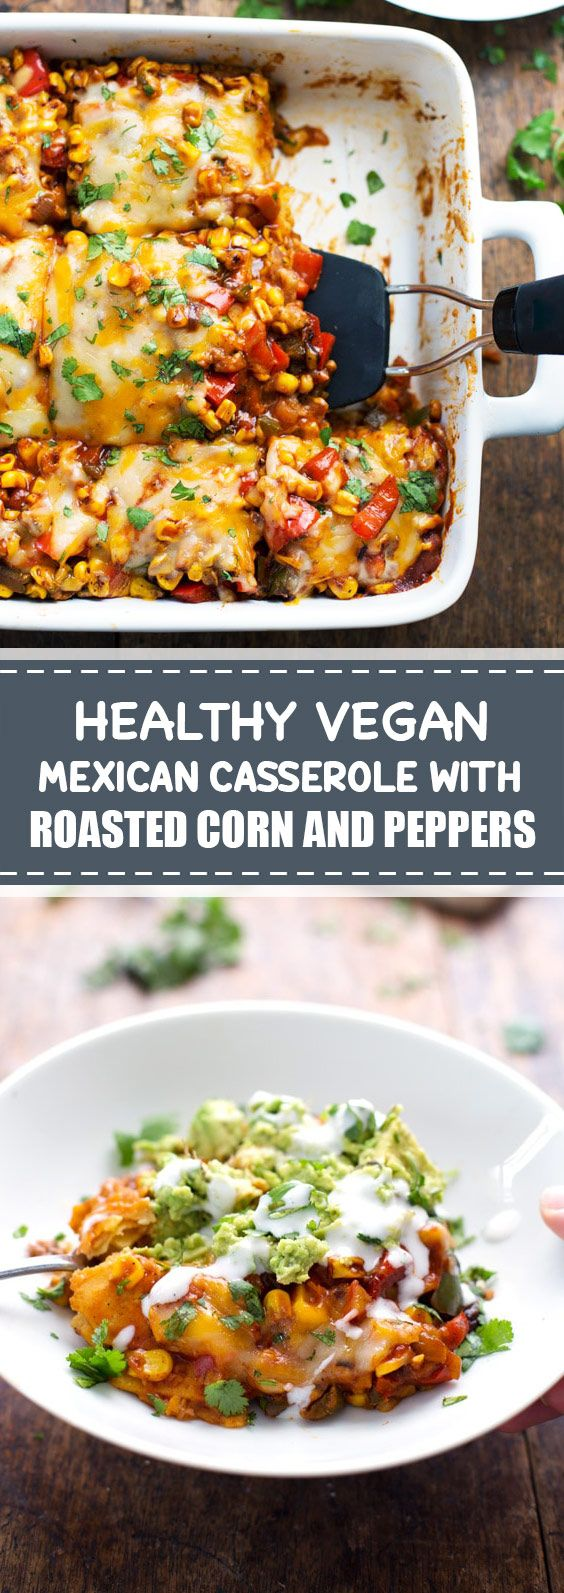 Healthy Vegan Mexican Casserole with Roasted Corn and Peppers   This Healthy Veg…